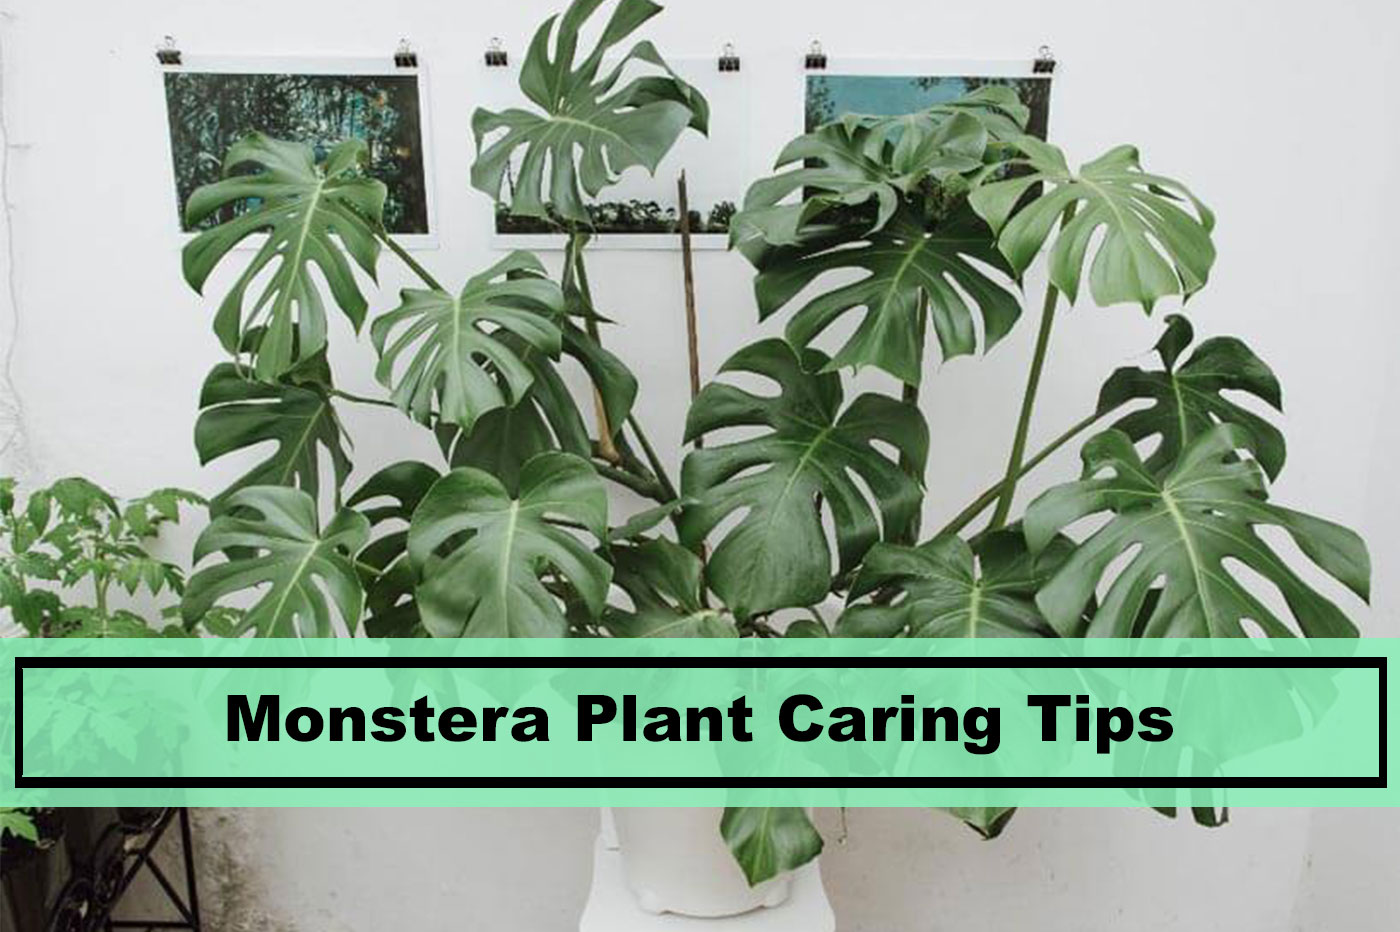 Best Monstera Plant Care Tips For 2020 Plants Spark Joy,How To Make Mexican Rice In Rice Cooker